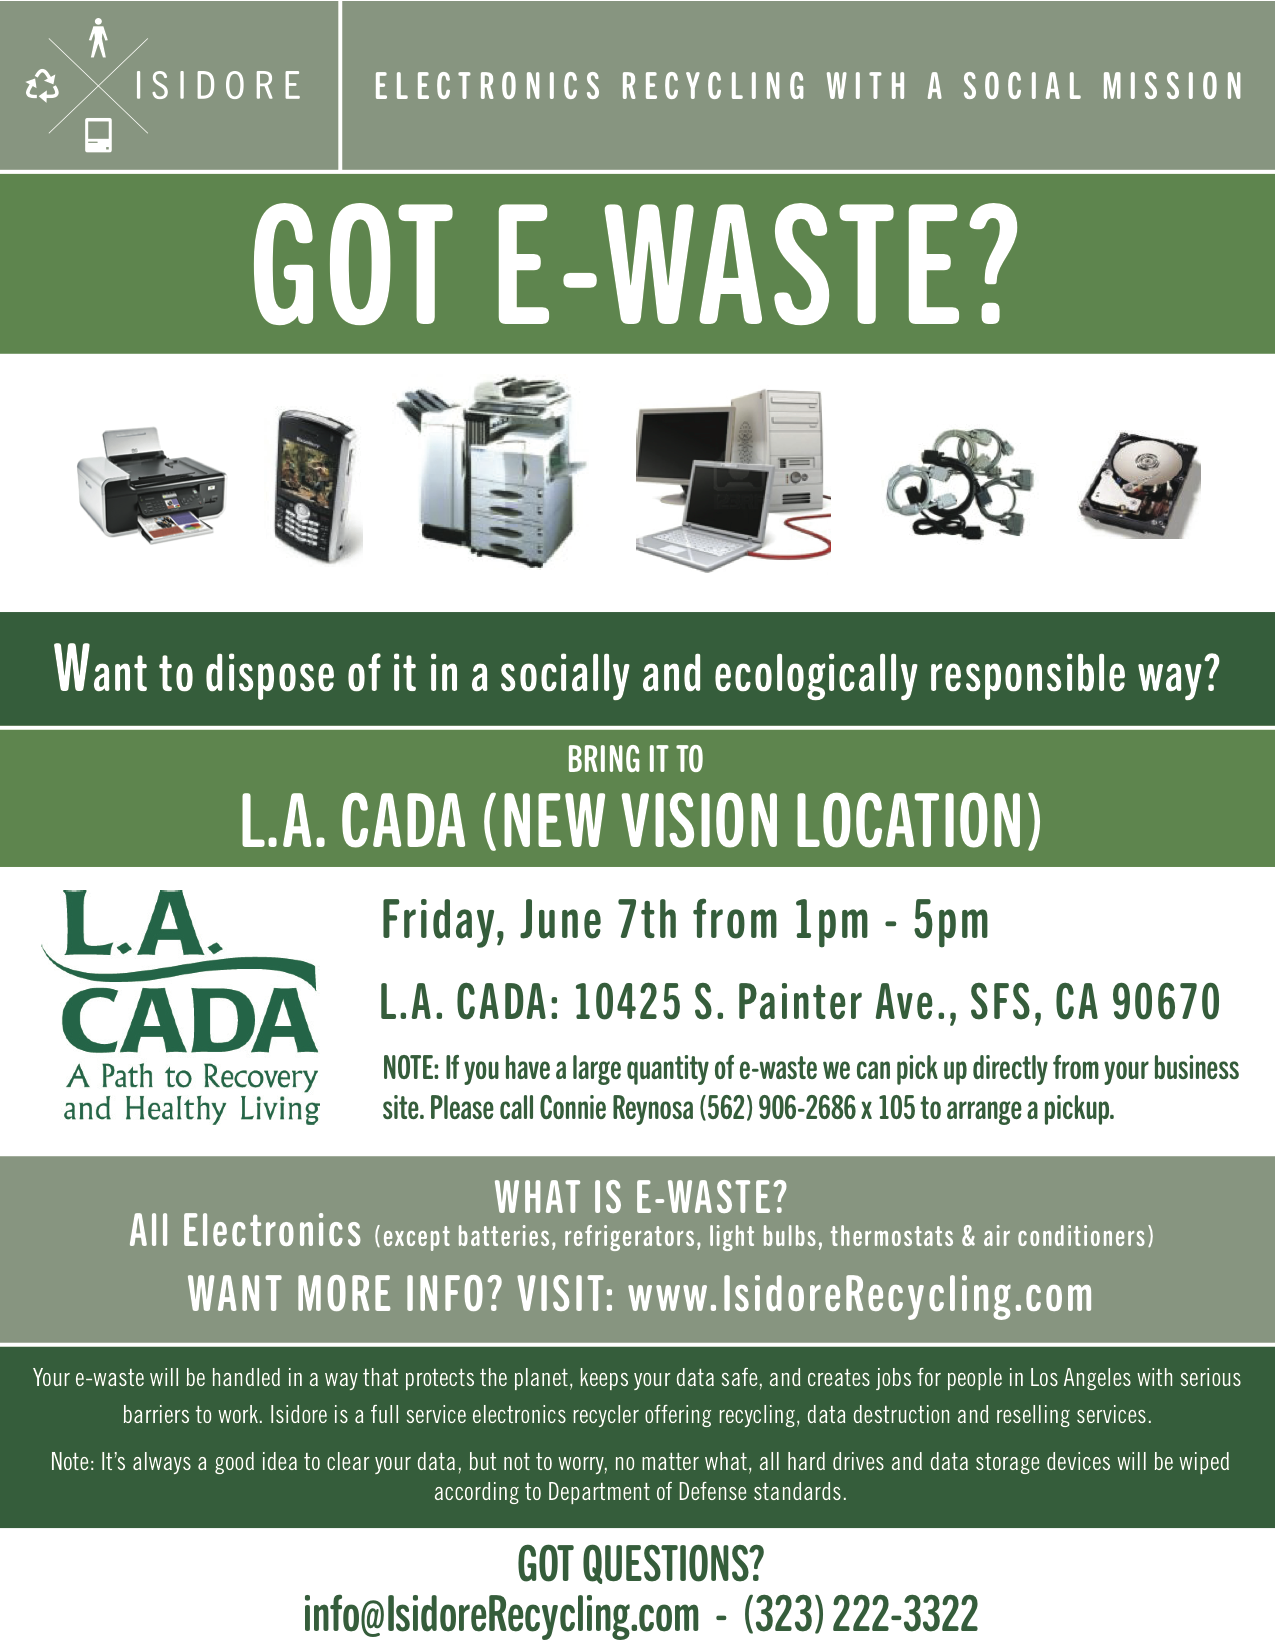 LA_CADA_E-Waste_Collection_(revised).png